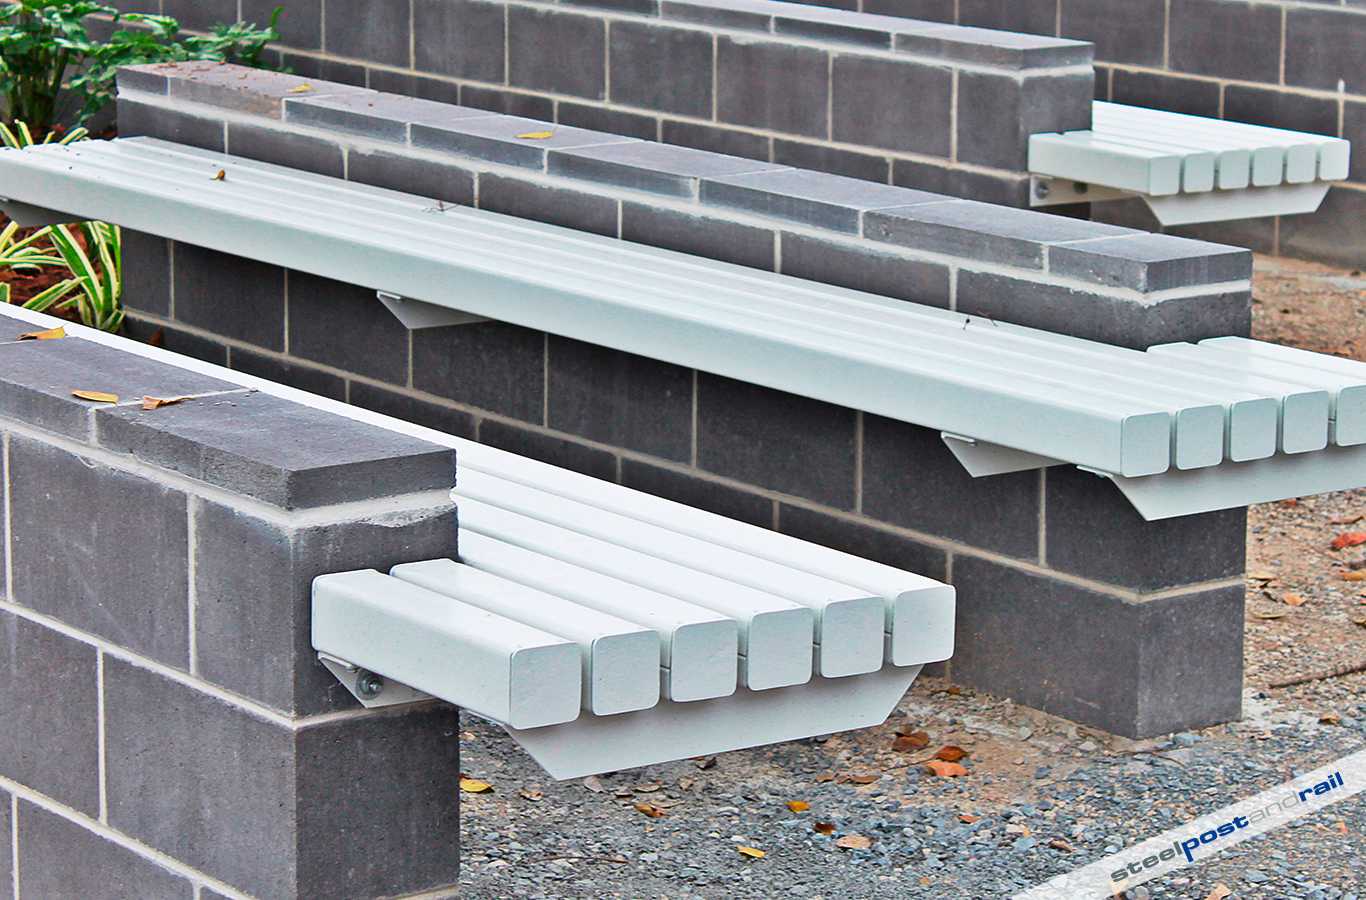 Product Code - Locsteel Bench Seating